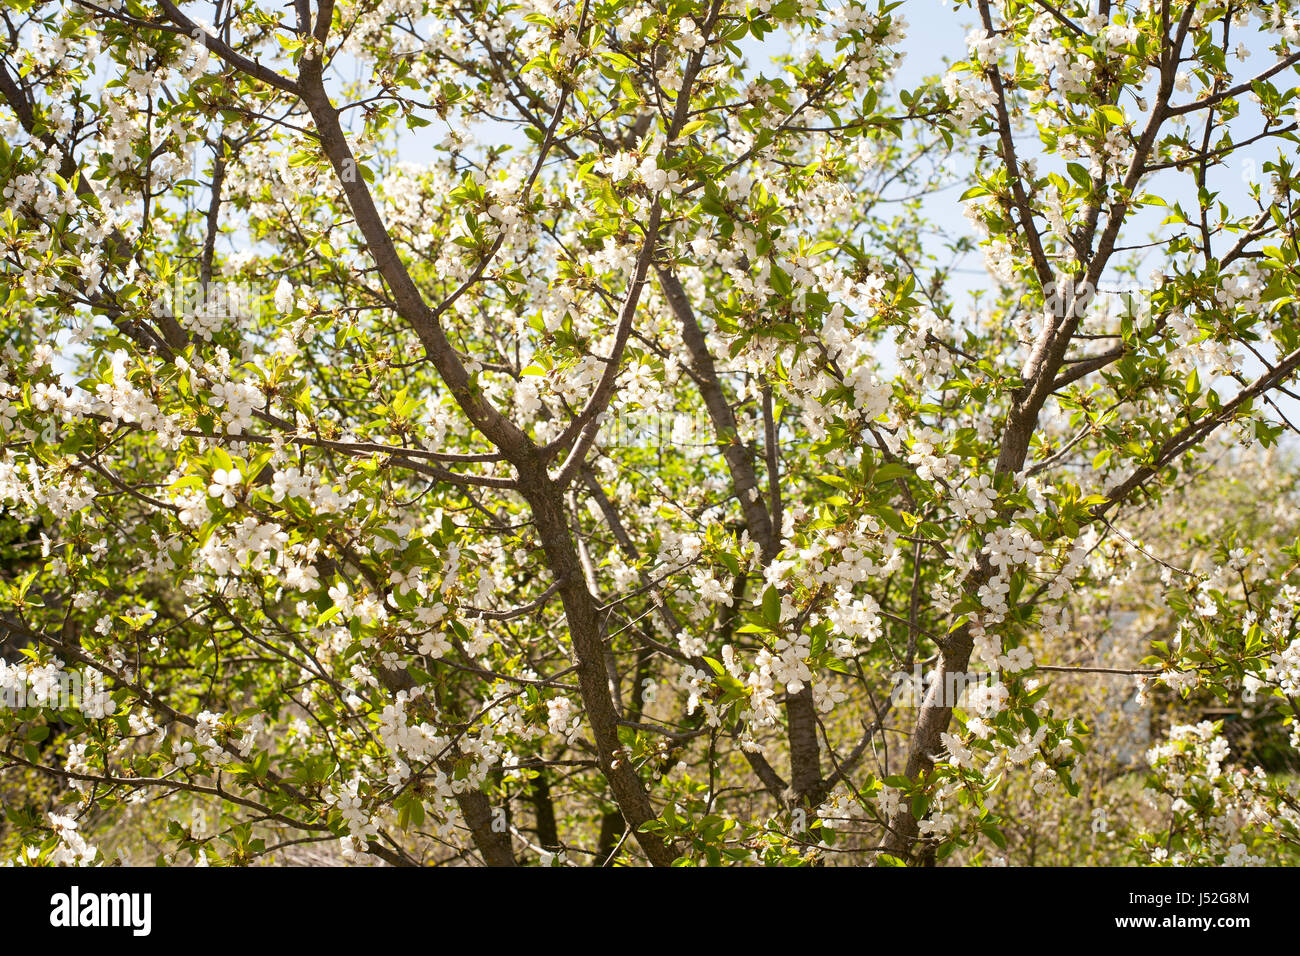 Spring Apricot Apple Trees In Blossom Flowers Of Apricot White